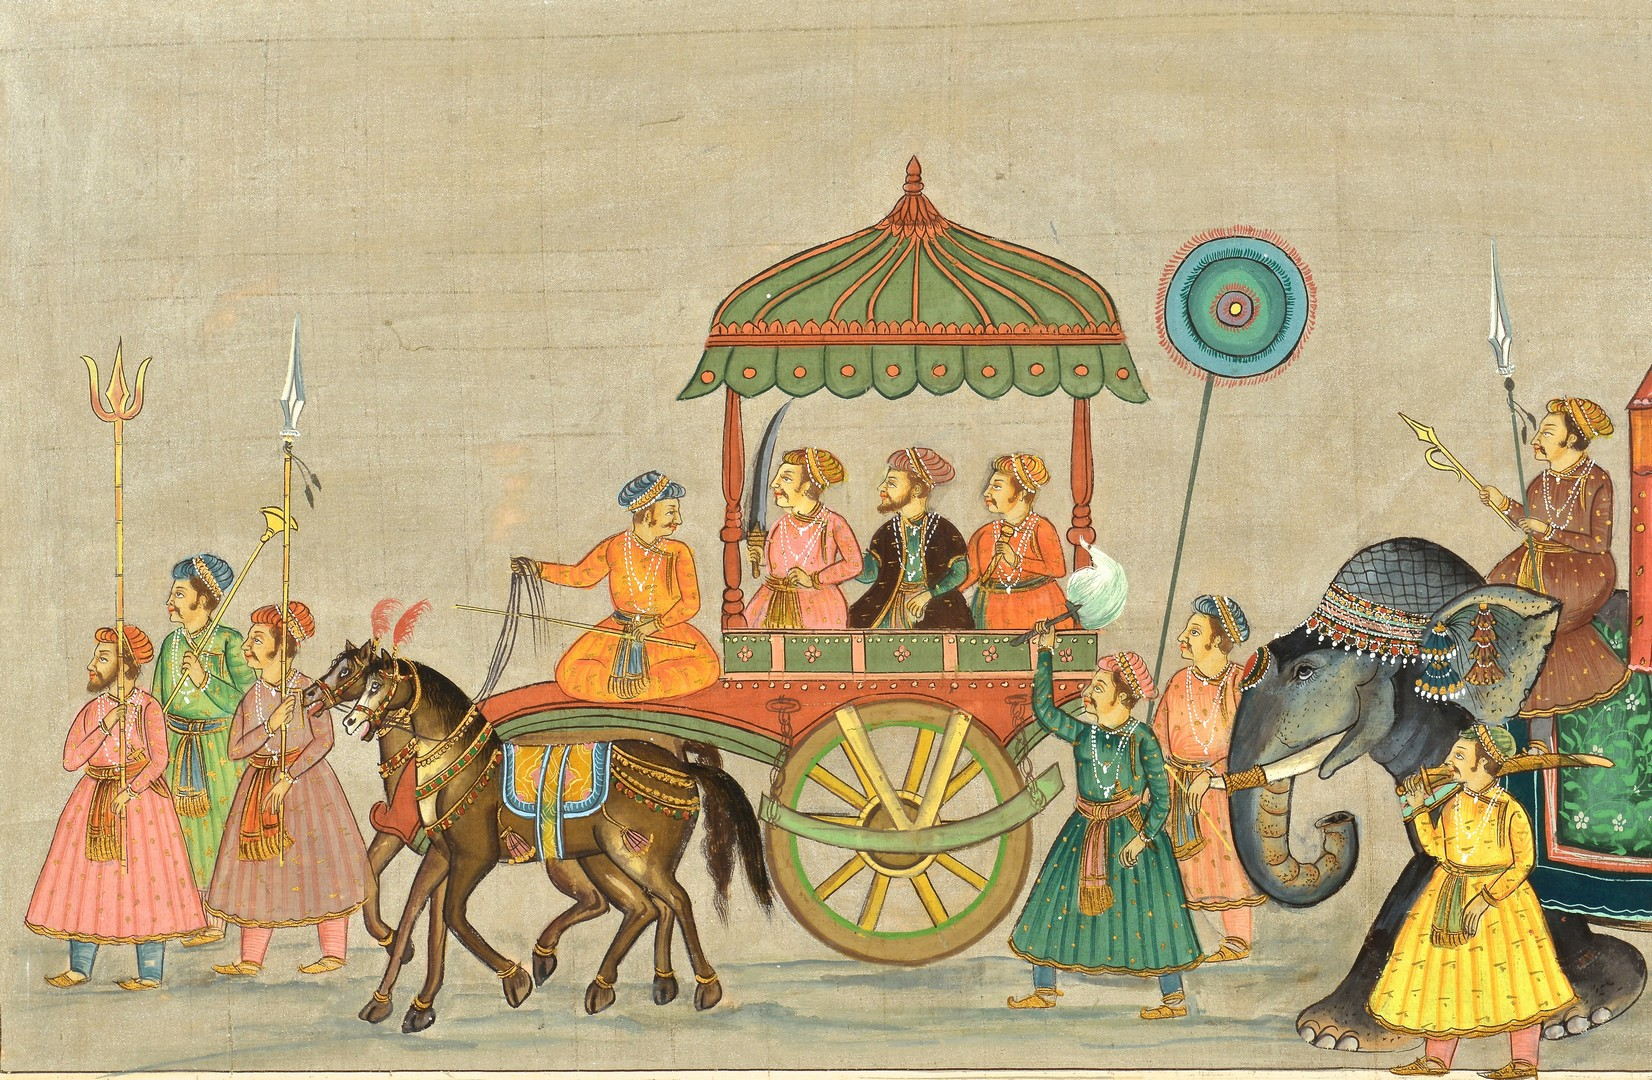 Lot 4010204: Indian School Watercolor on Cloth